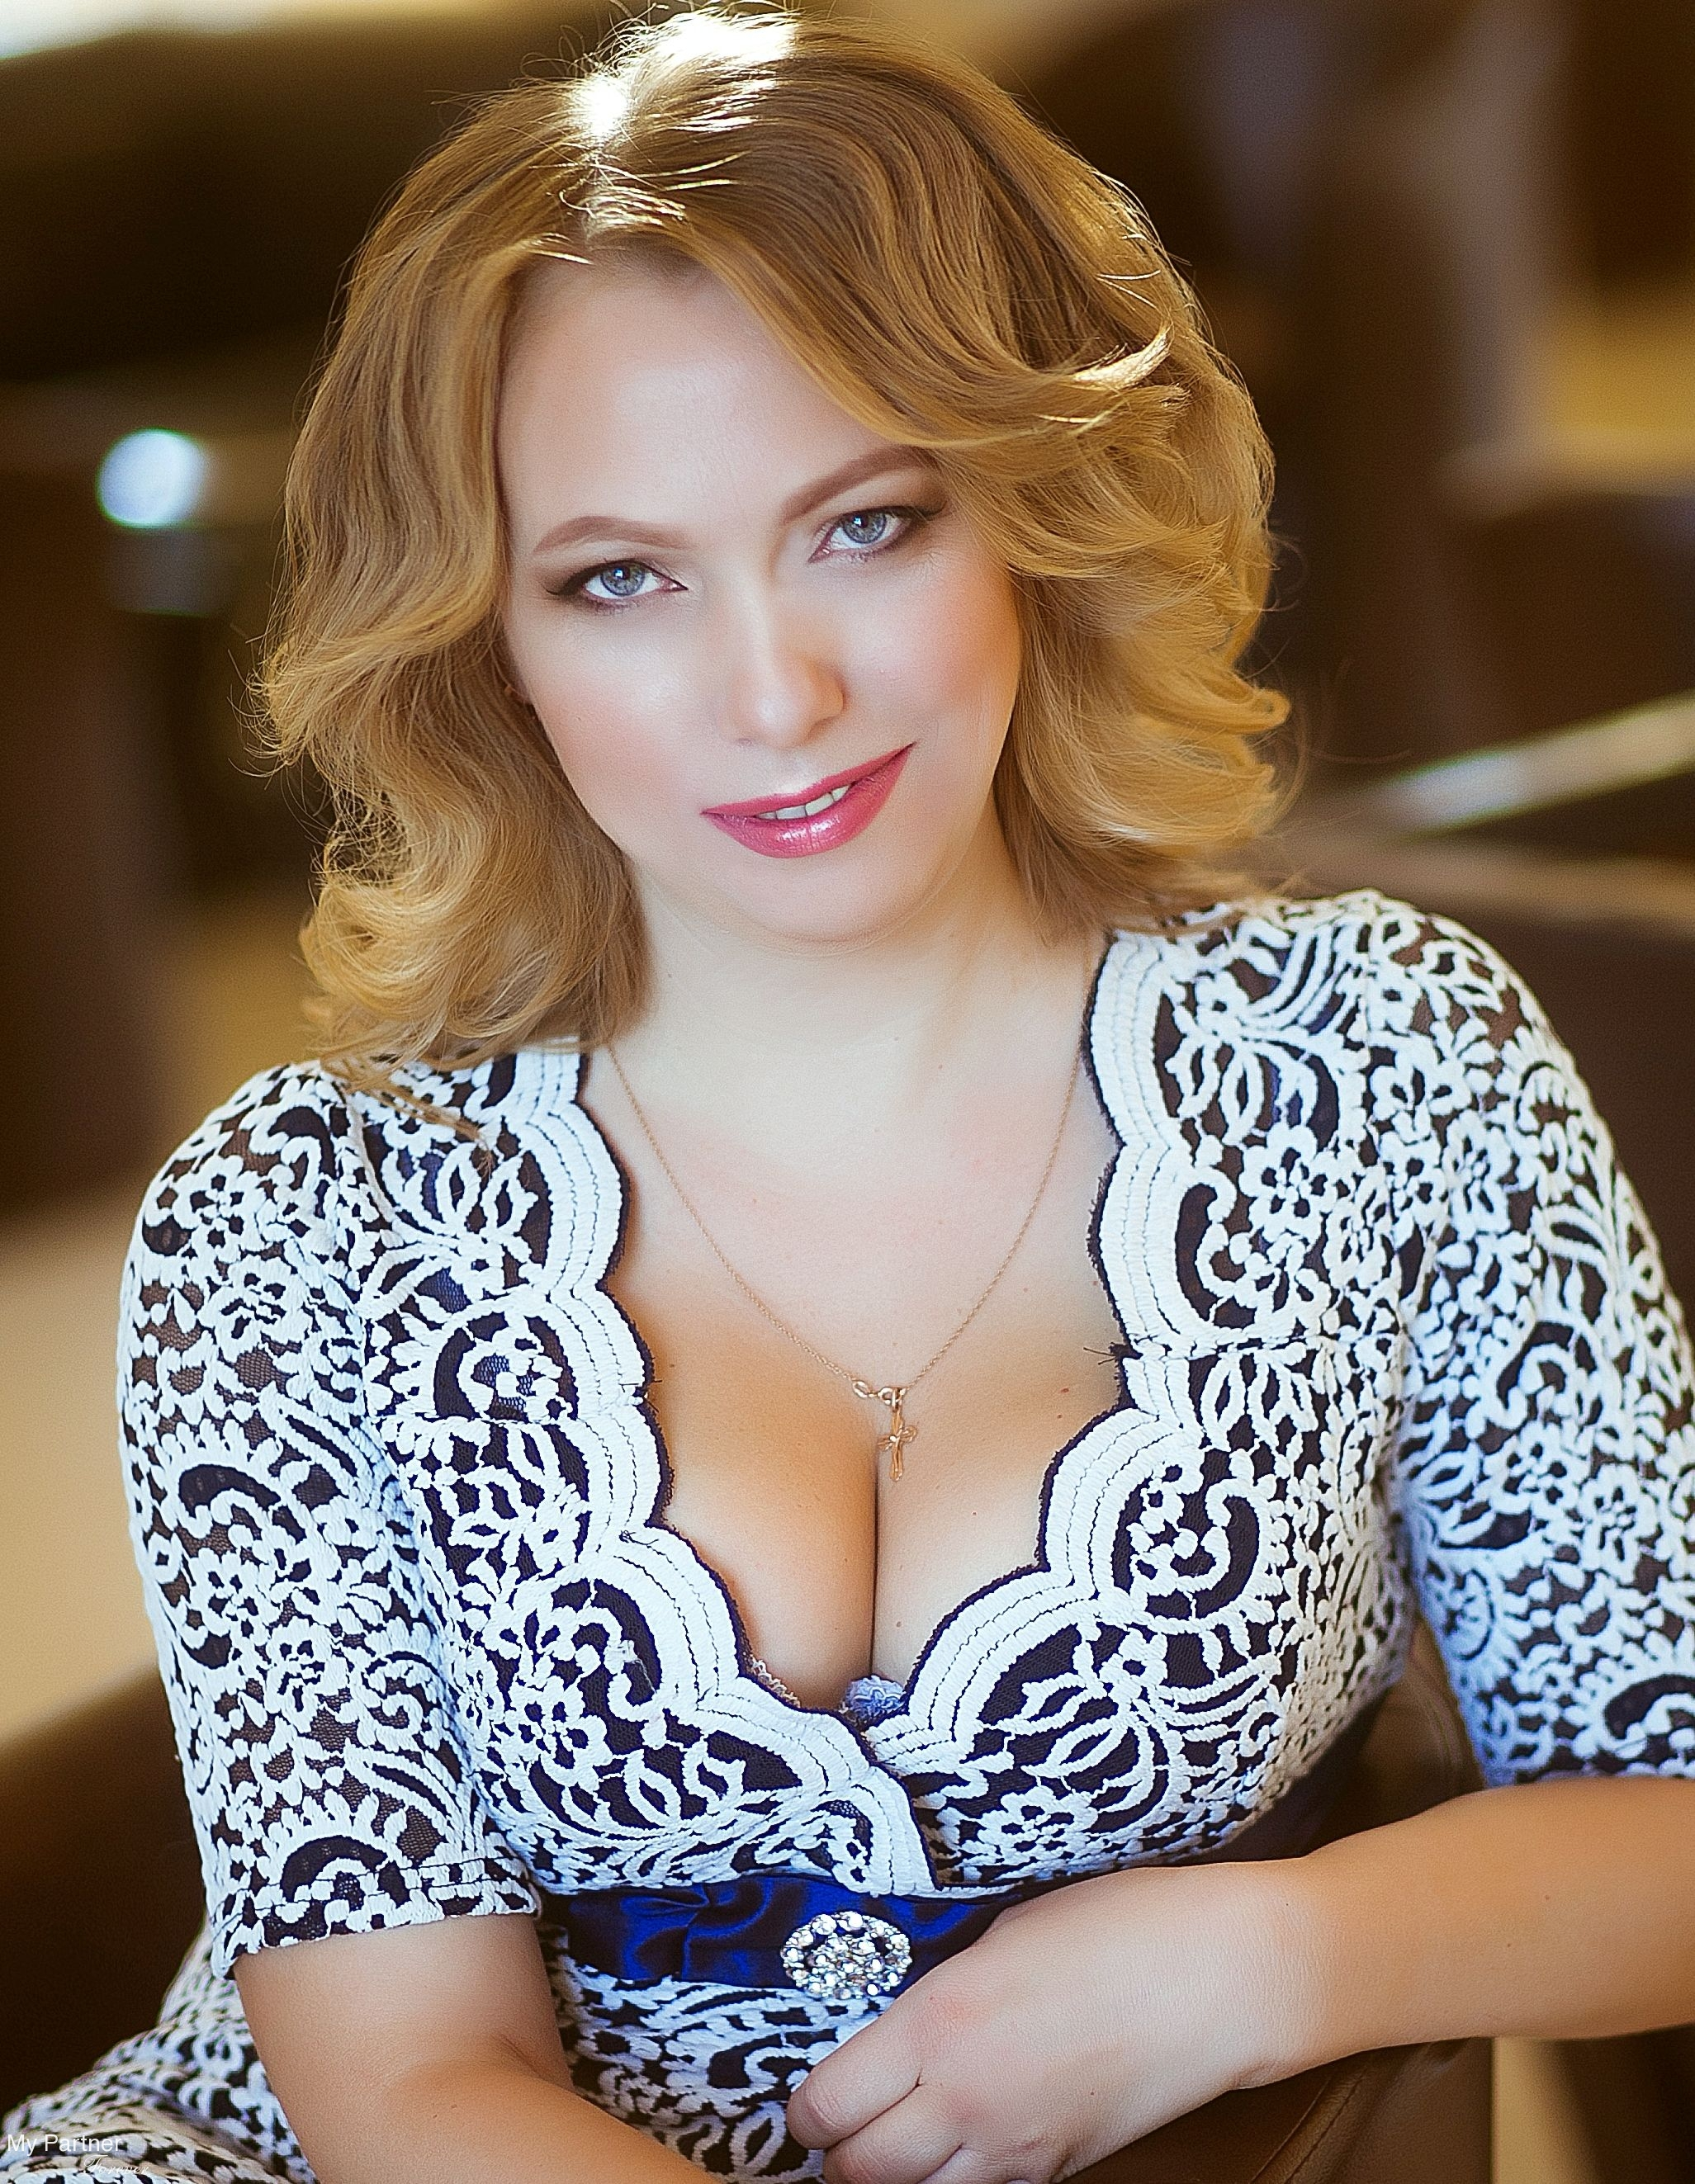 olga single girls He should be courageous, gentle and tender man with his woman, respects the woman and her feminity, we should understand and feel each other, thanks to this we'll become perfect couple.